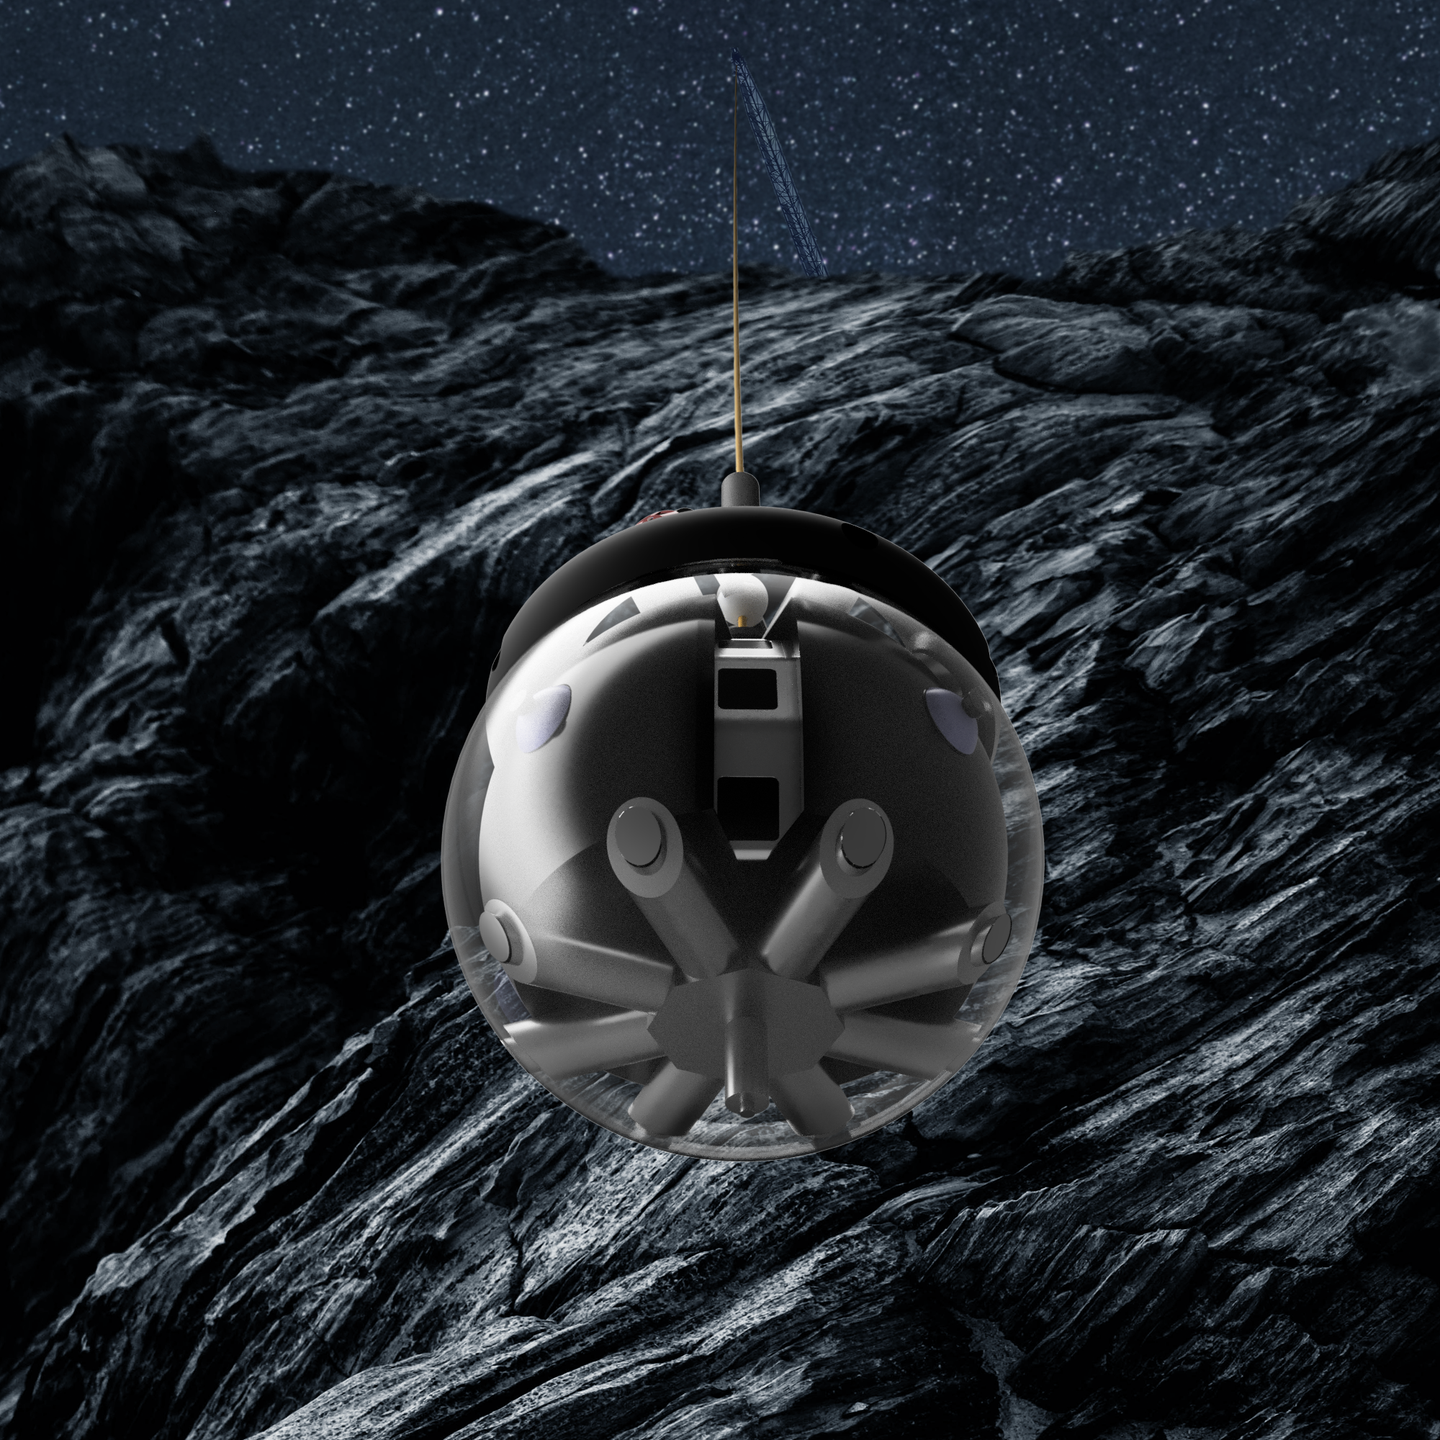 Artist's impression of the DAEDALUS robot on the moon